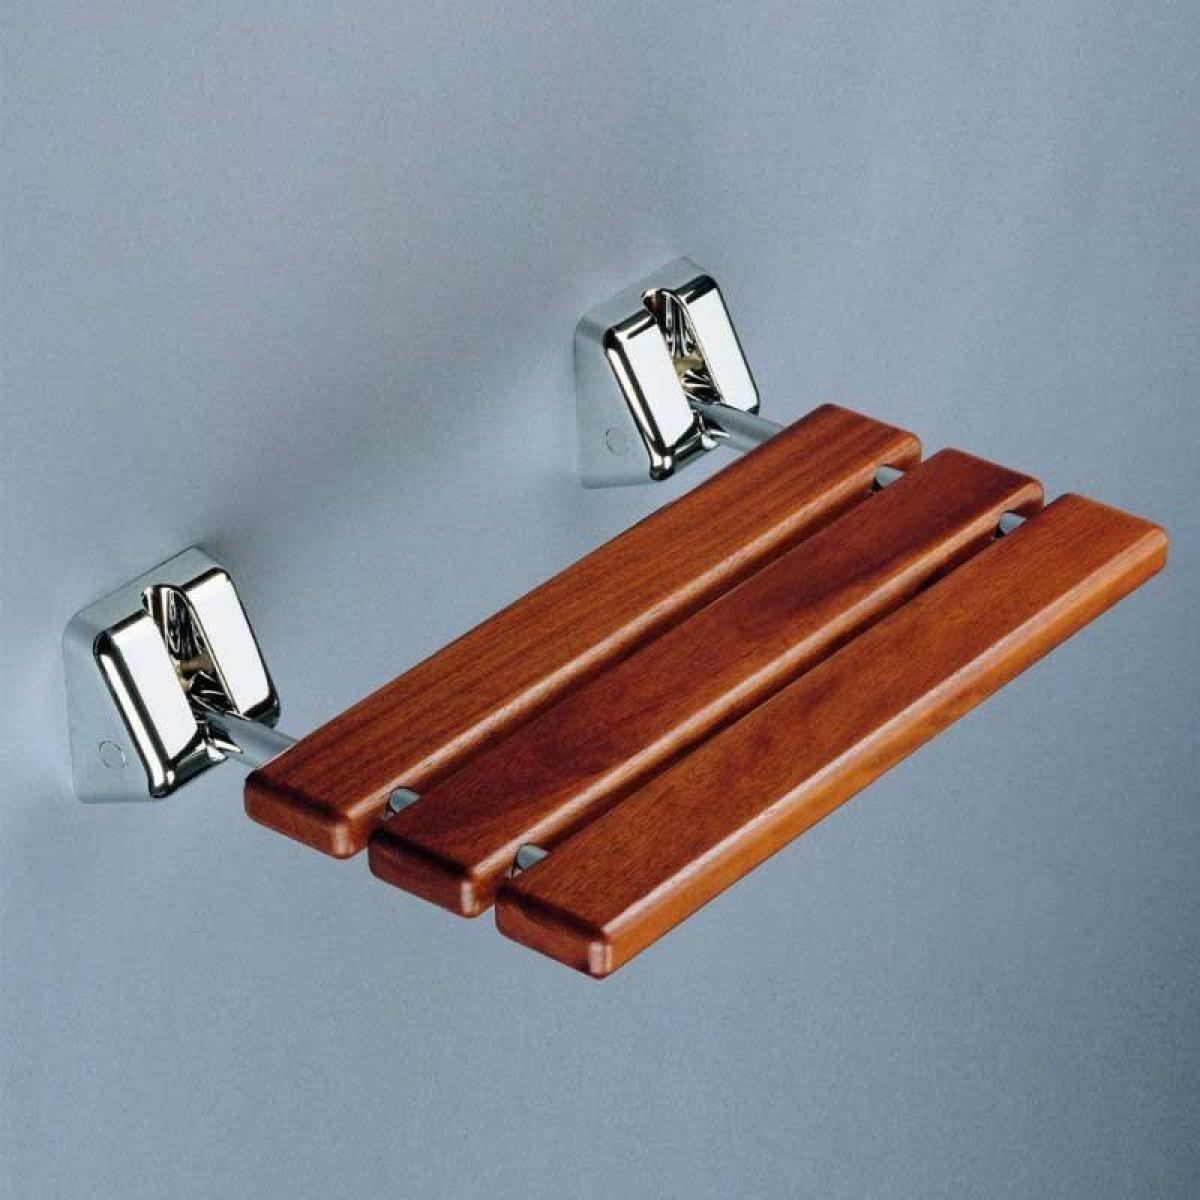 Lakes Bathrooms Folding Shower Seat Wall Mounted Series 200rd